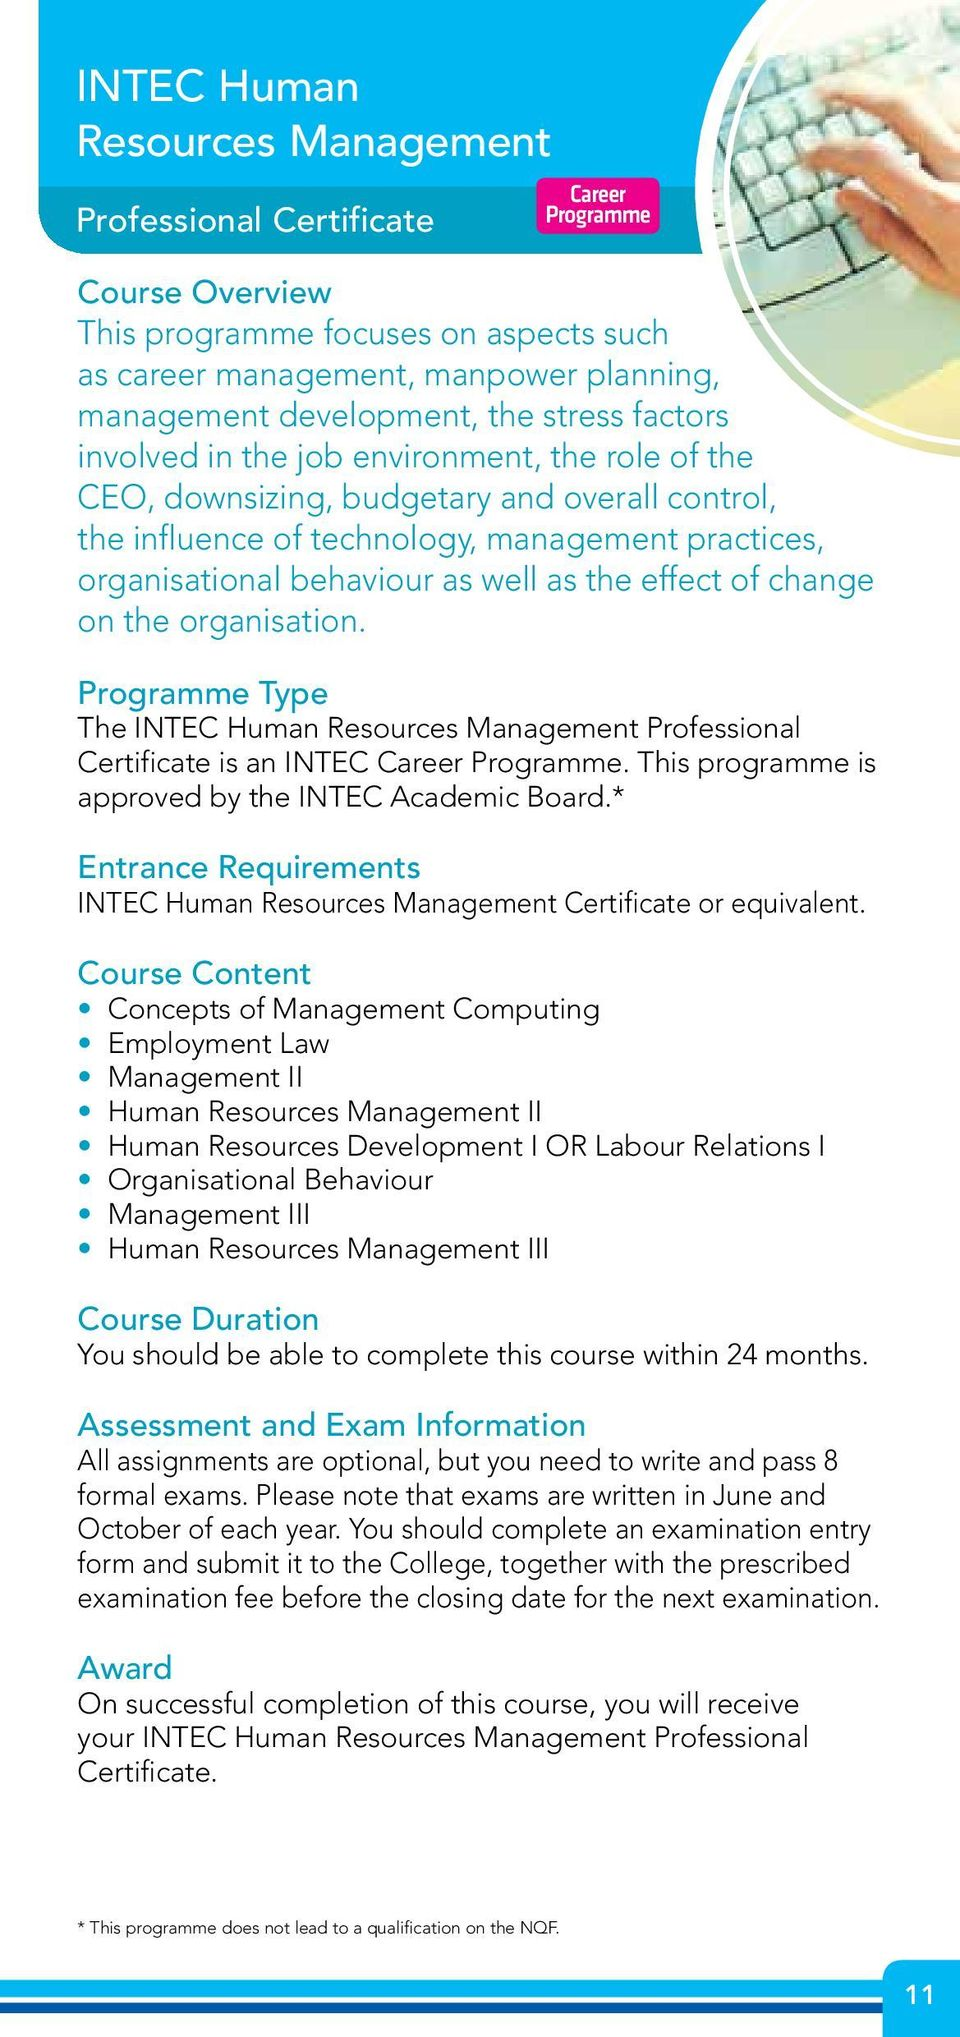 the effect of change on the organisation. Programme Type The INTEC Human Resources Management Professional Certificate is an INTEC Career Programme.